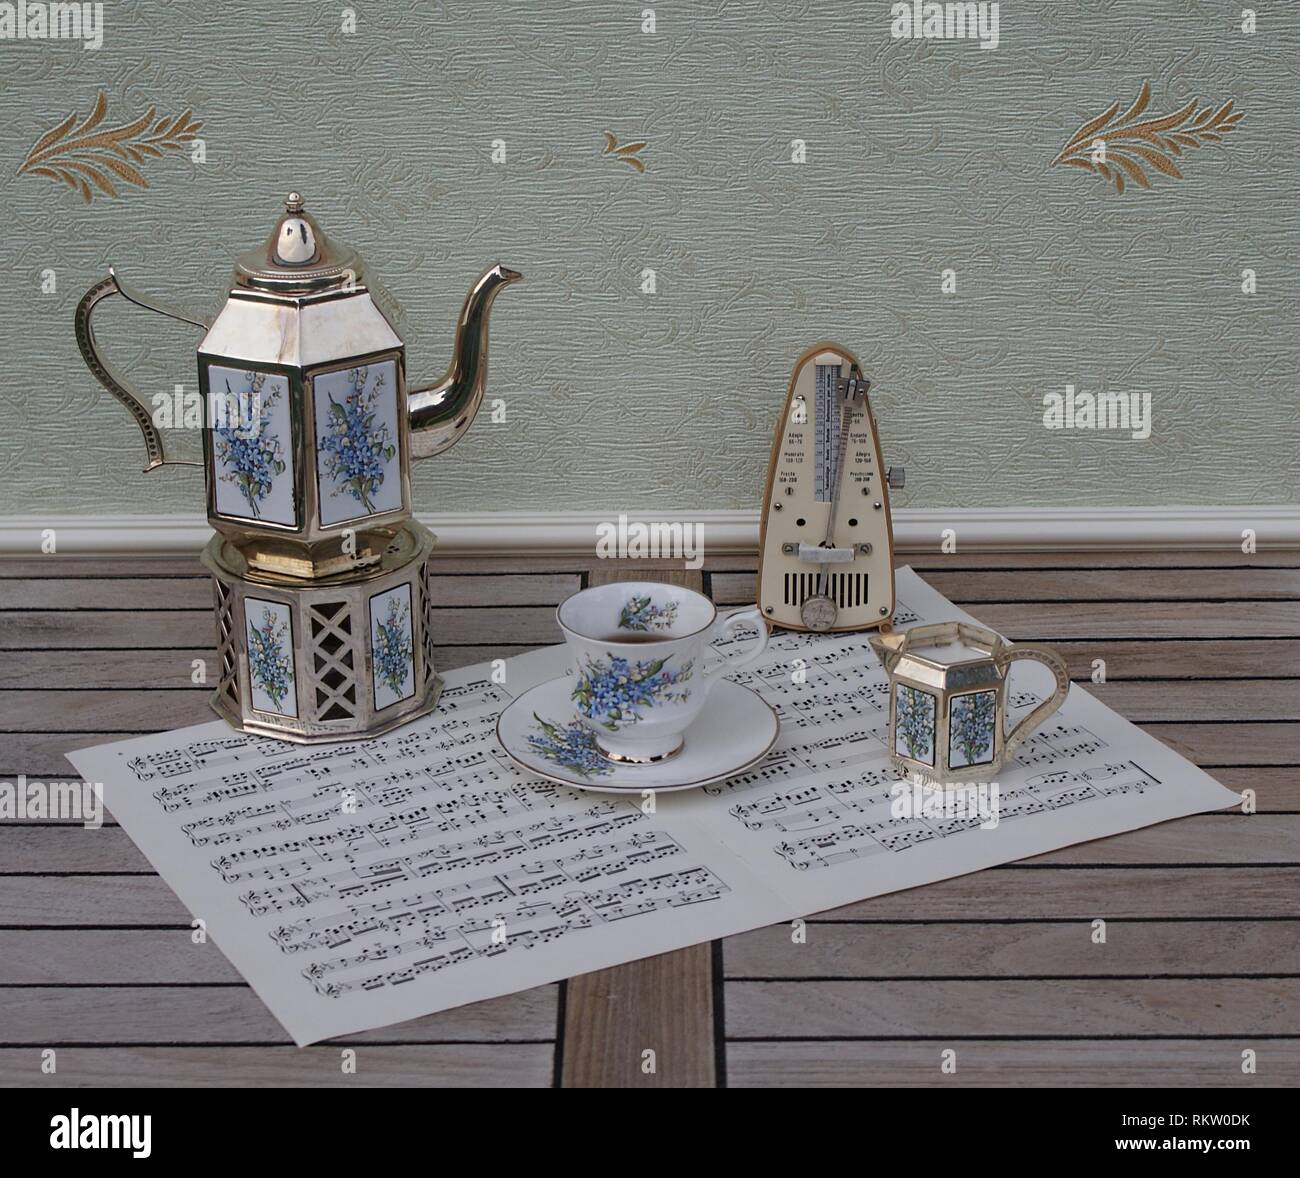 English teacup and saucer, silver-plated teapot on a silver stove, cream jug with floral decor, and metronome for music on a sheet of music - Stock Image